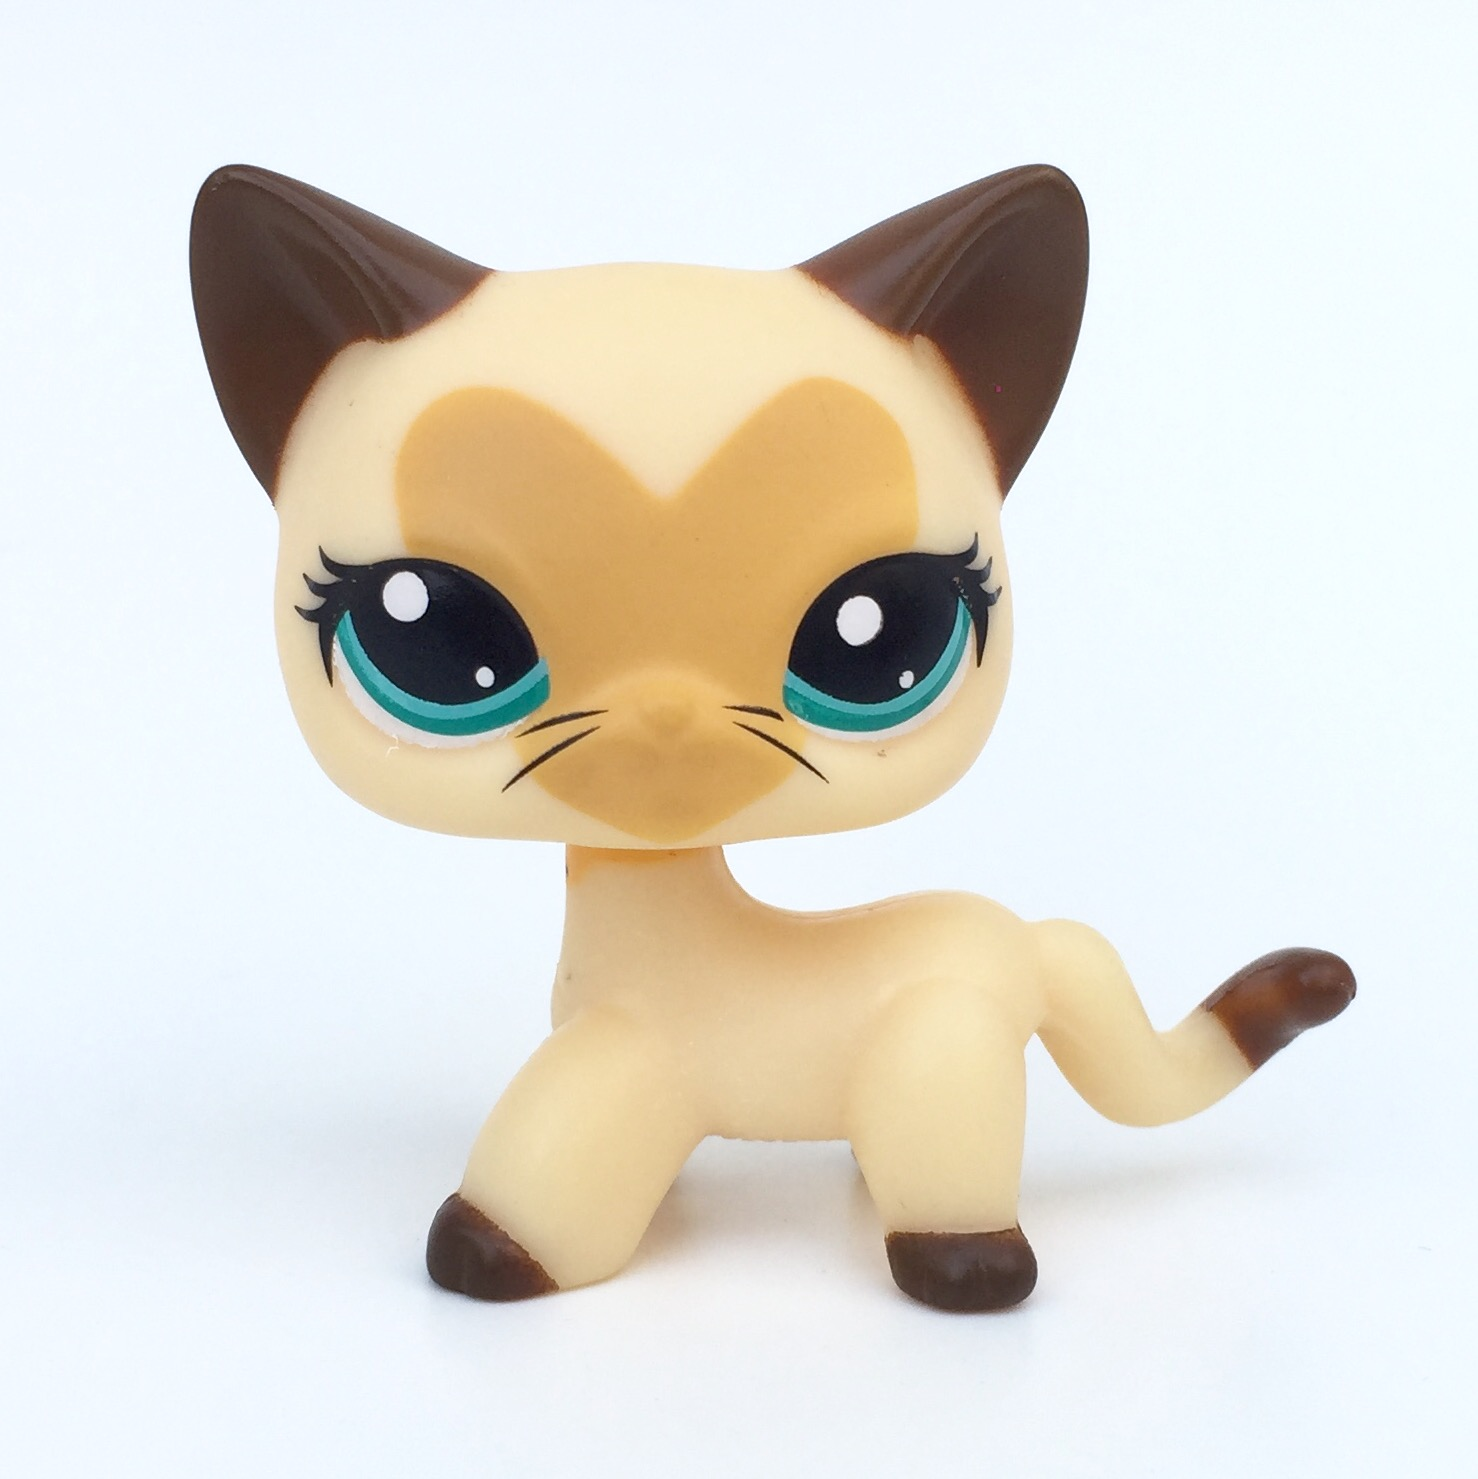 pet shop lps toys #3573 Yellow short Hair Cat animal Collrction Figure For Girl подставка универсальная для ножей